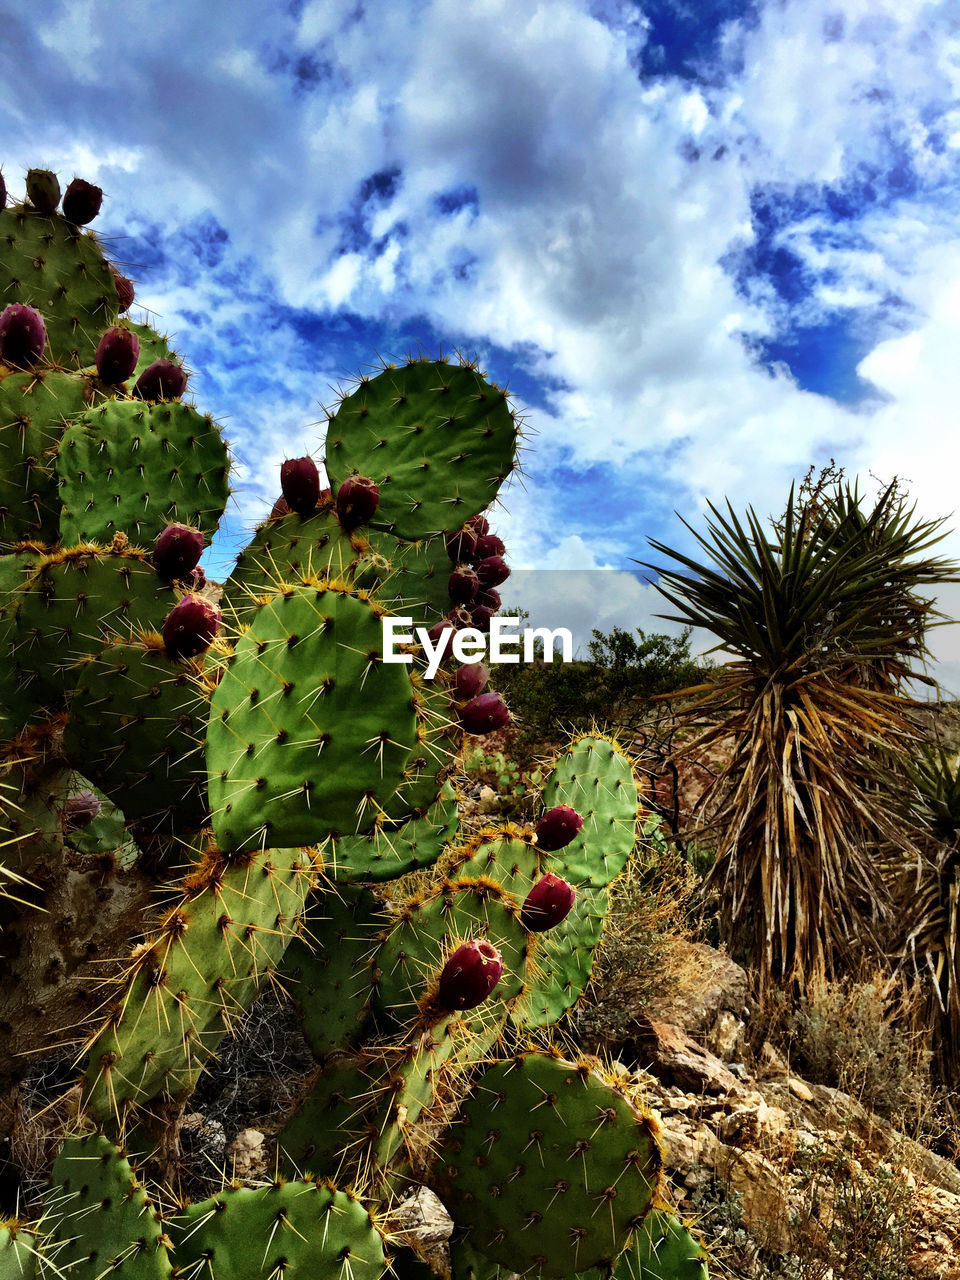 cactus, growth, nature, thorn, prickly pear cactus, spiked, sky, green color, cloud - sky, no people, plant, day, outdoors, danger, beauty in nature, low angle view, field, saguaro cactus, tree, close-up